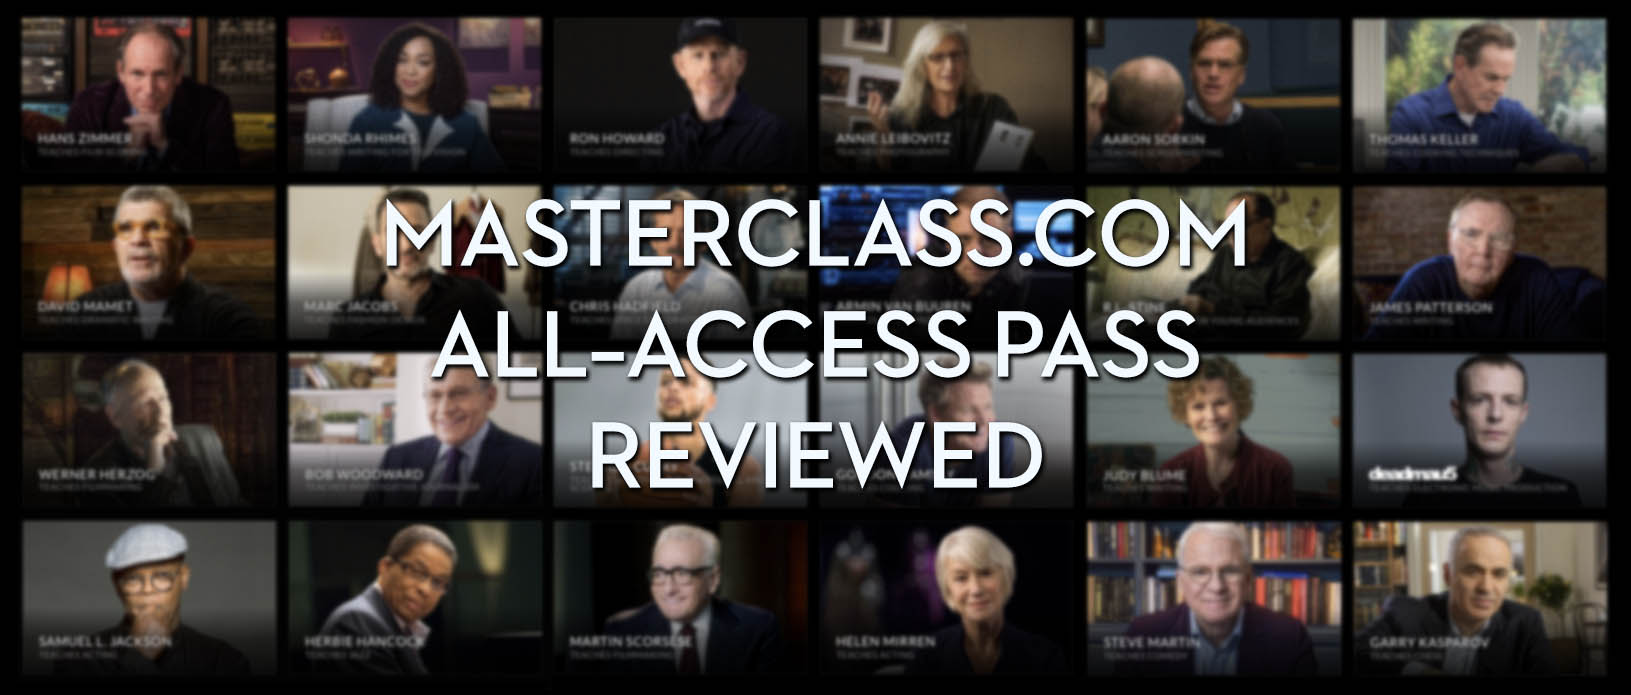 Masterclass.com All-access pass reviewed